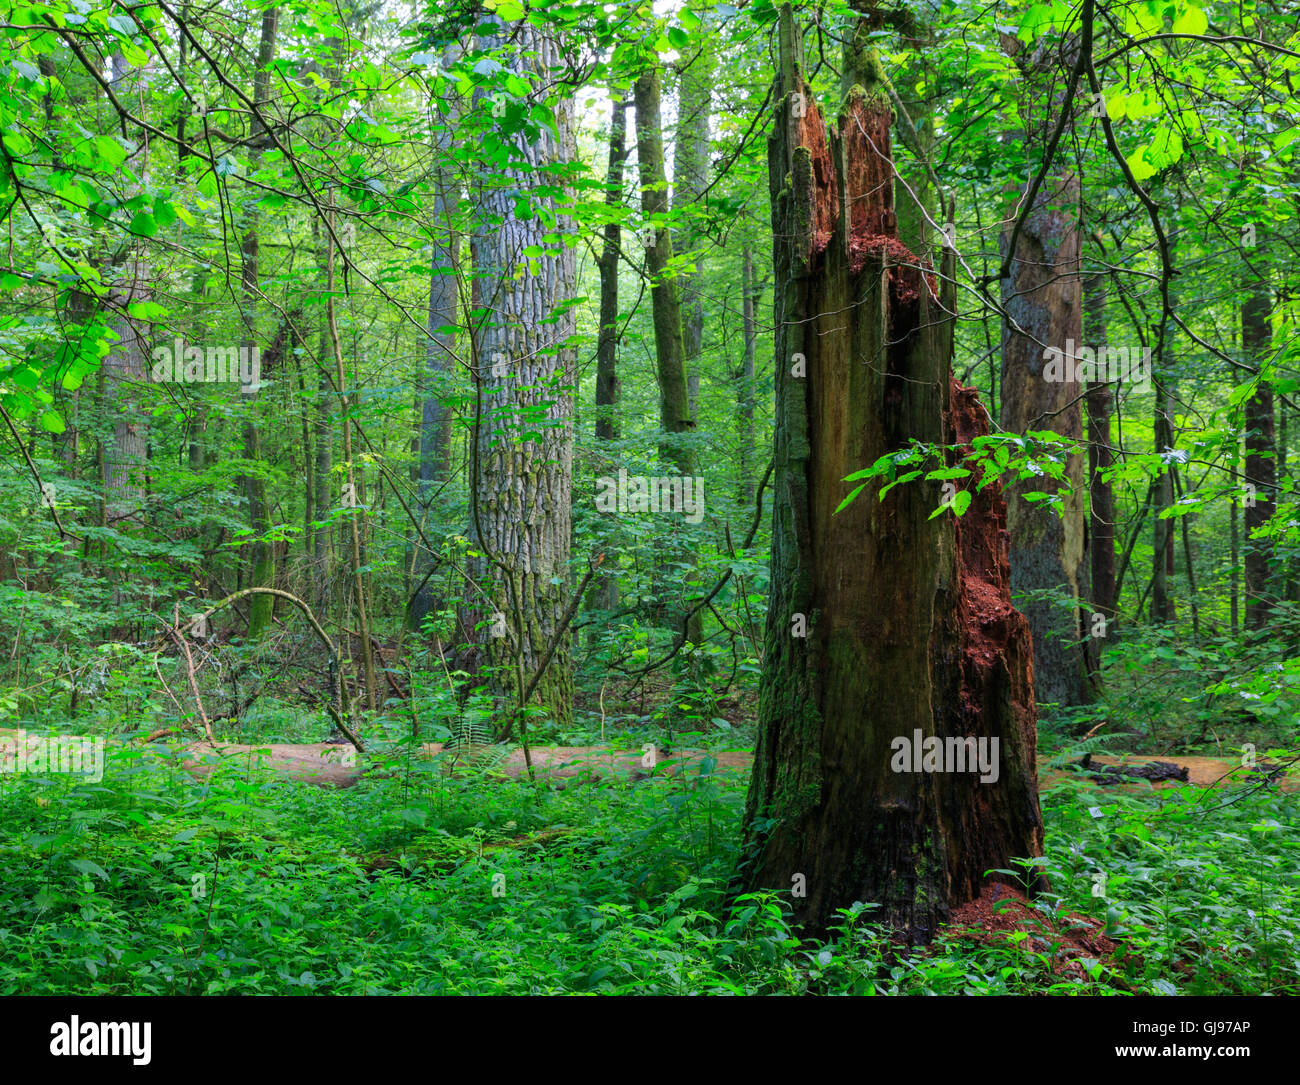 Barkless dead spruces in old summertime deciduous stand,Bialowieza Forest,Poland,Europe - Stock Image